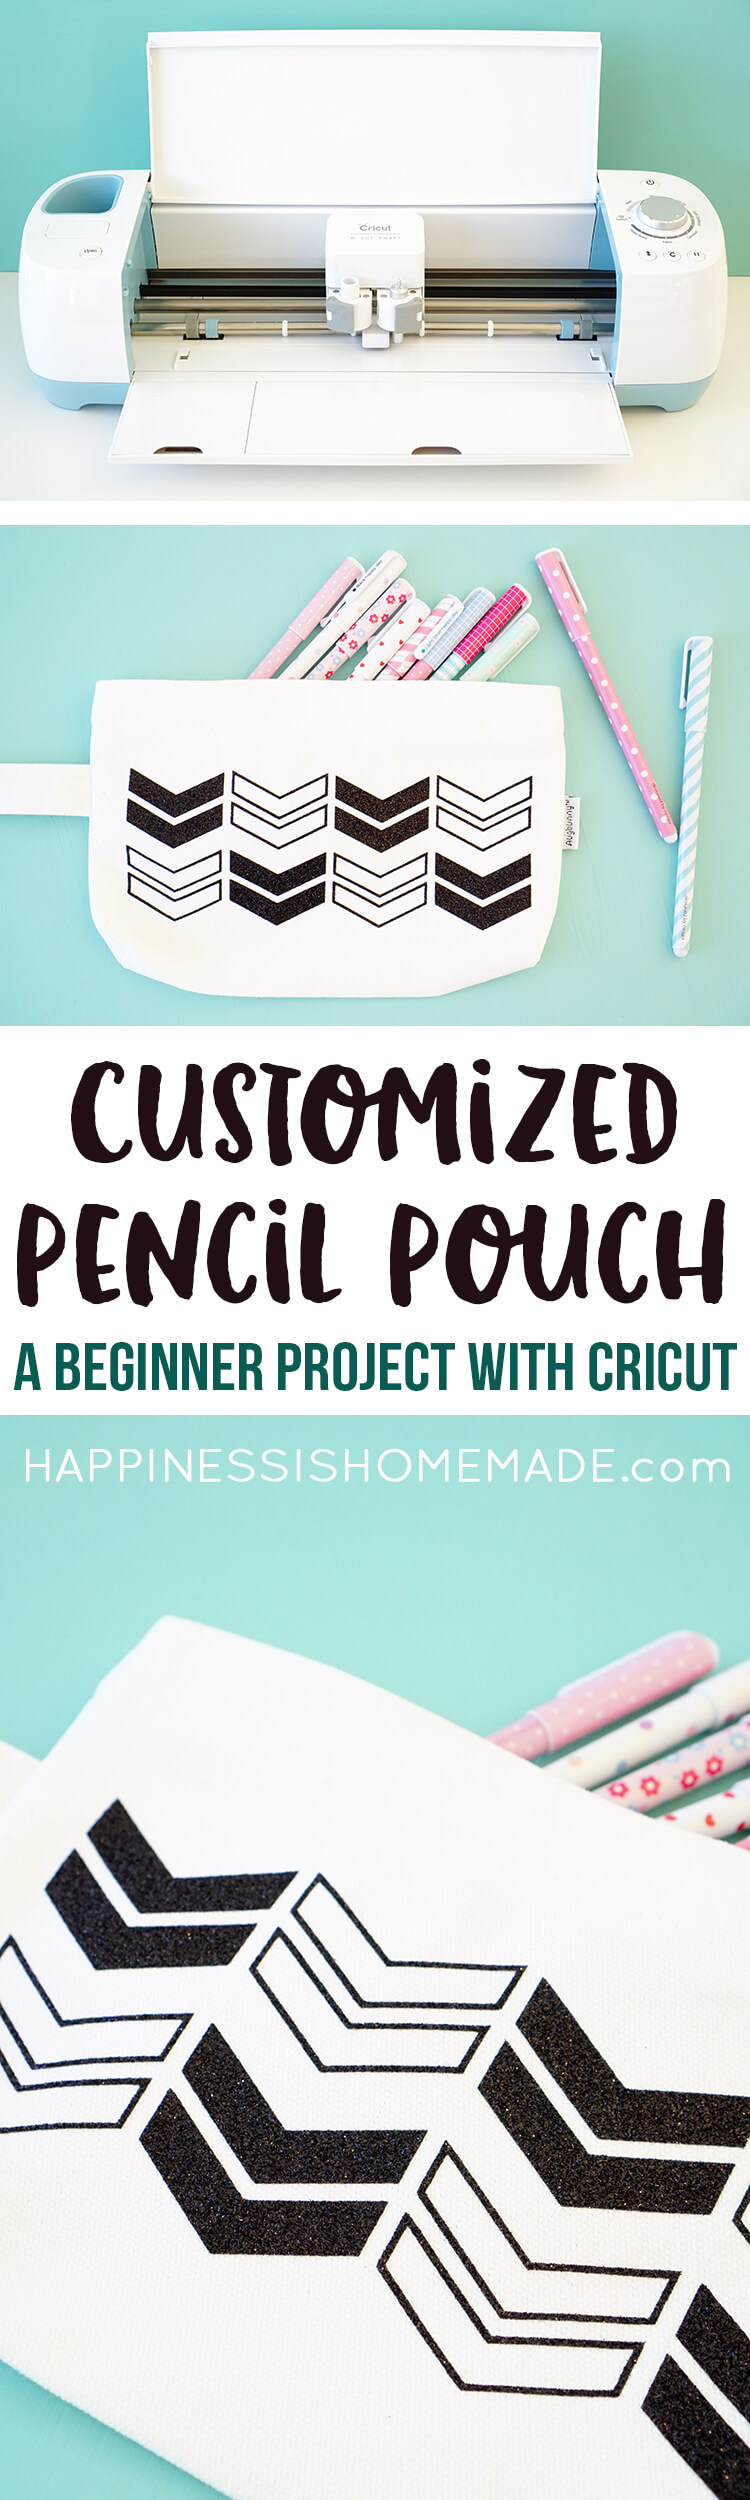 customized-pencil-pouch-a-beginner-project-with-the-cricut-explore-air